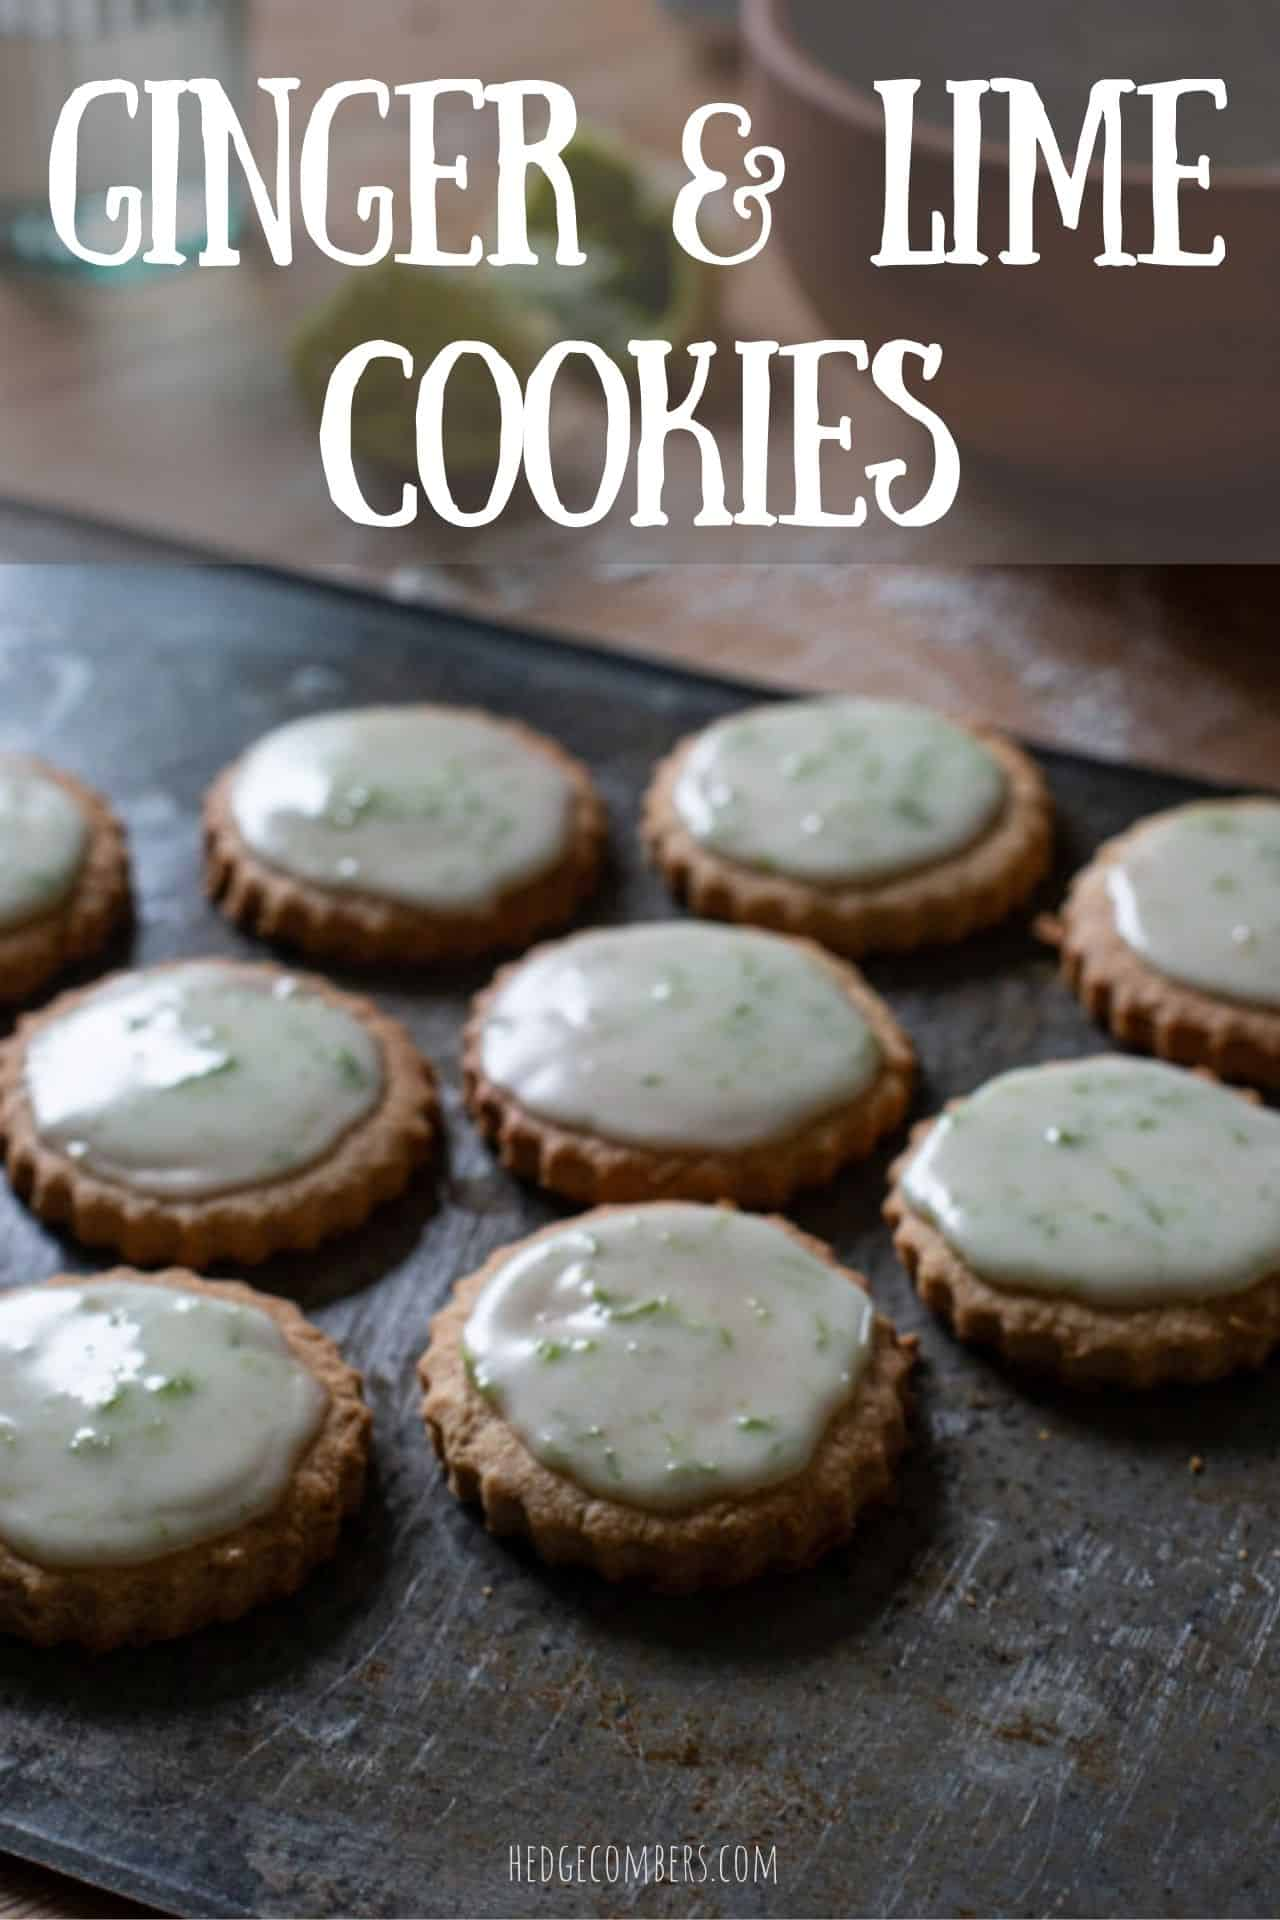 dark grey baking sheet topped with several iced ginger cookies on a wooden counter